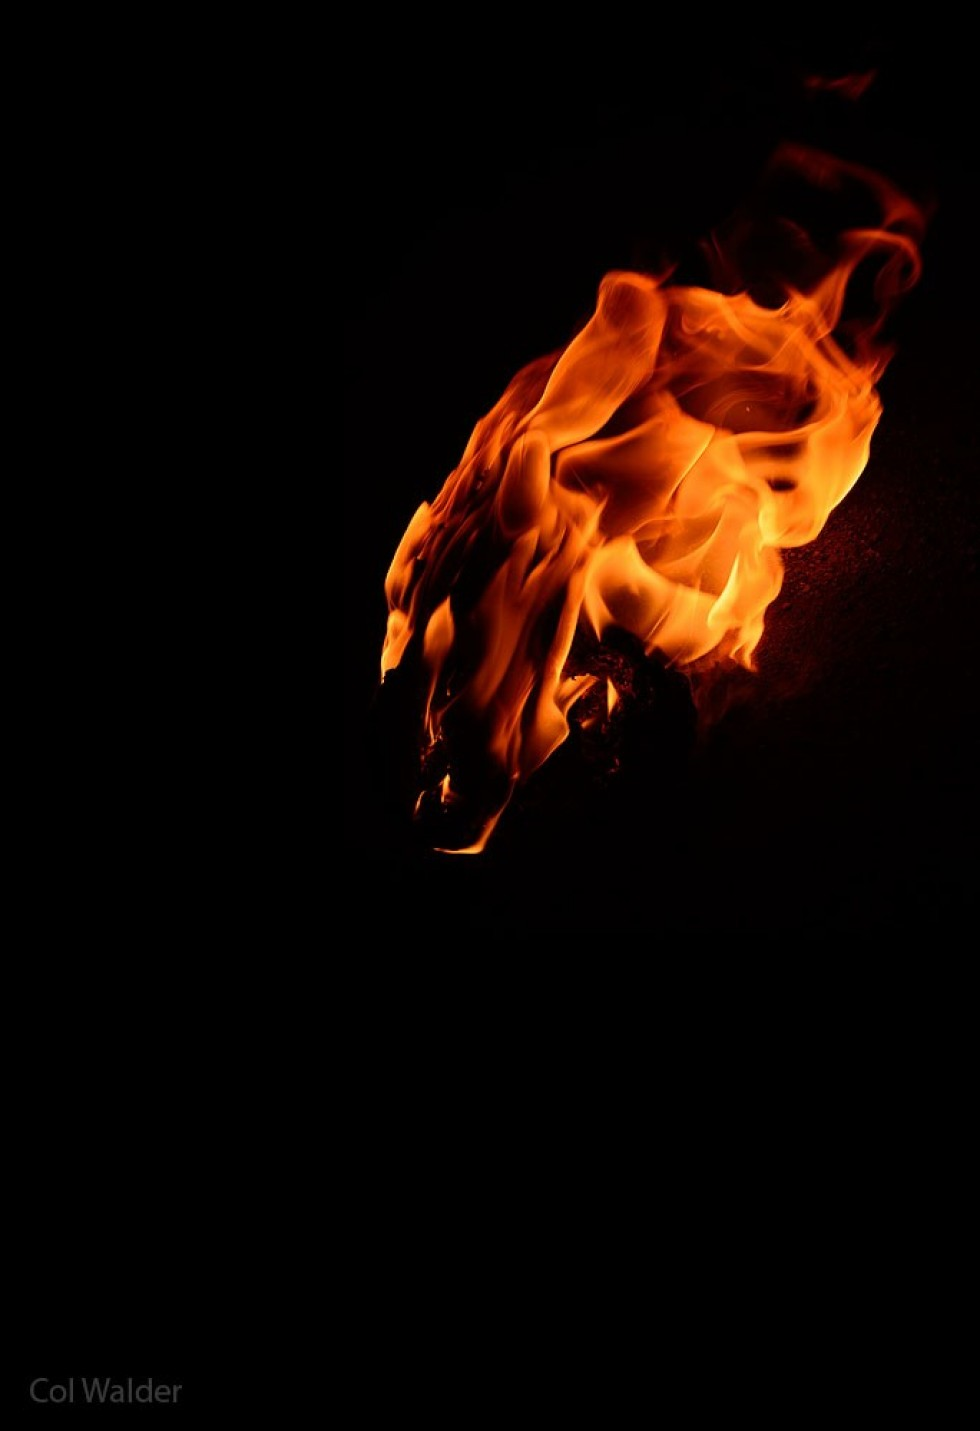 A Face in the Flame